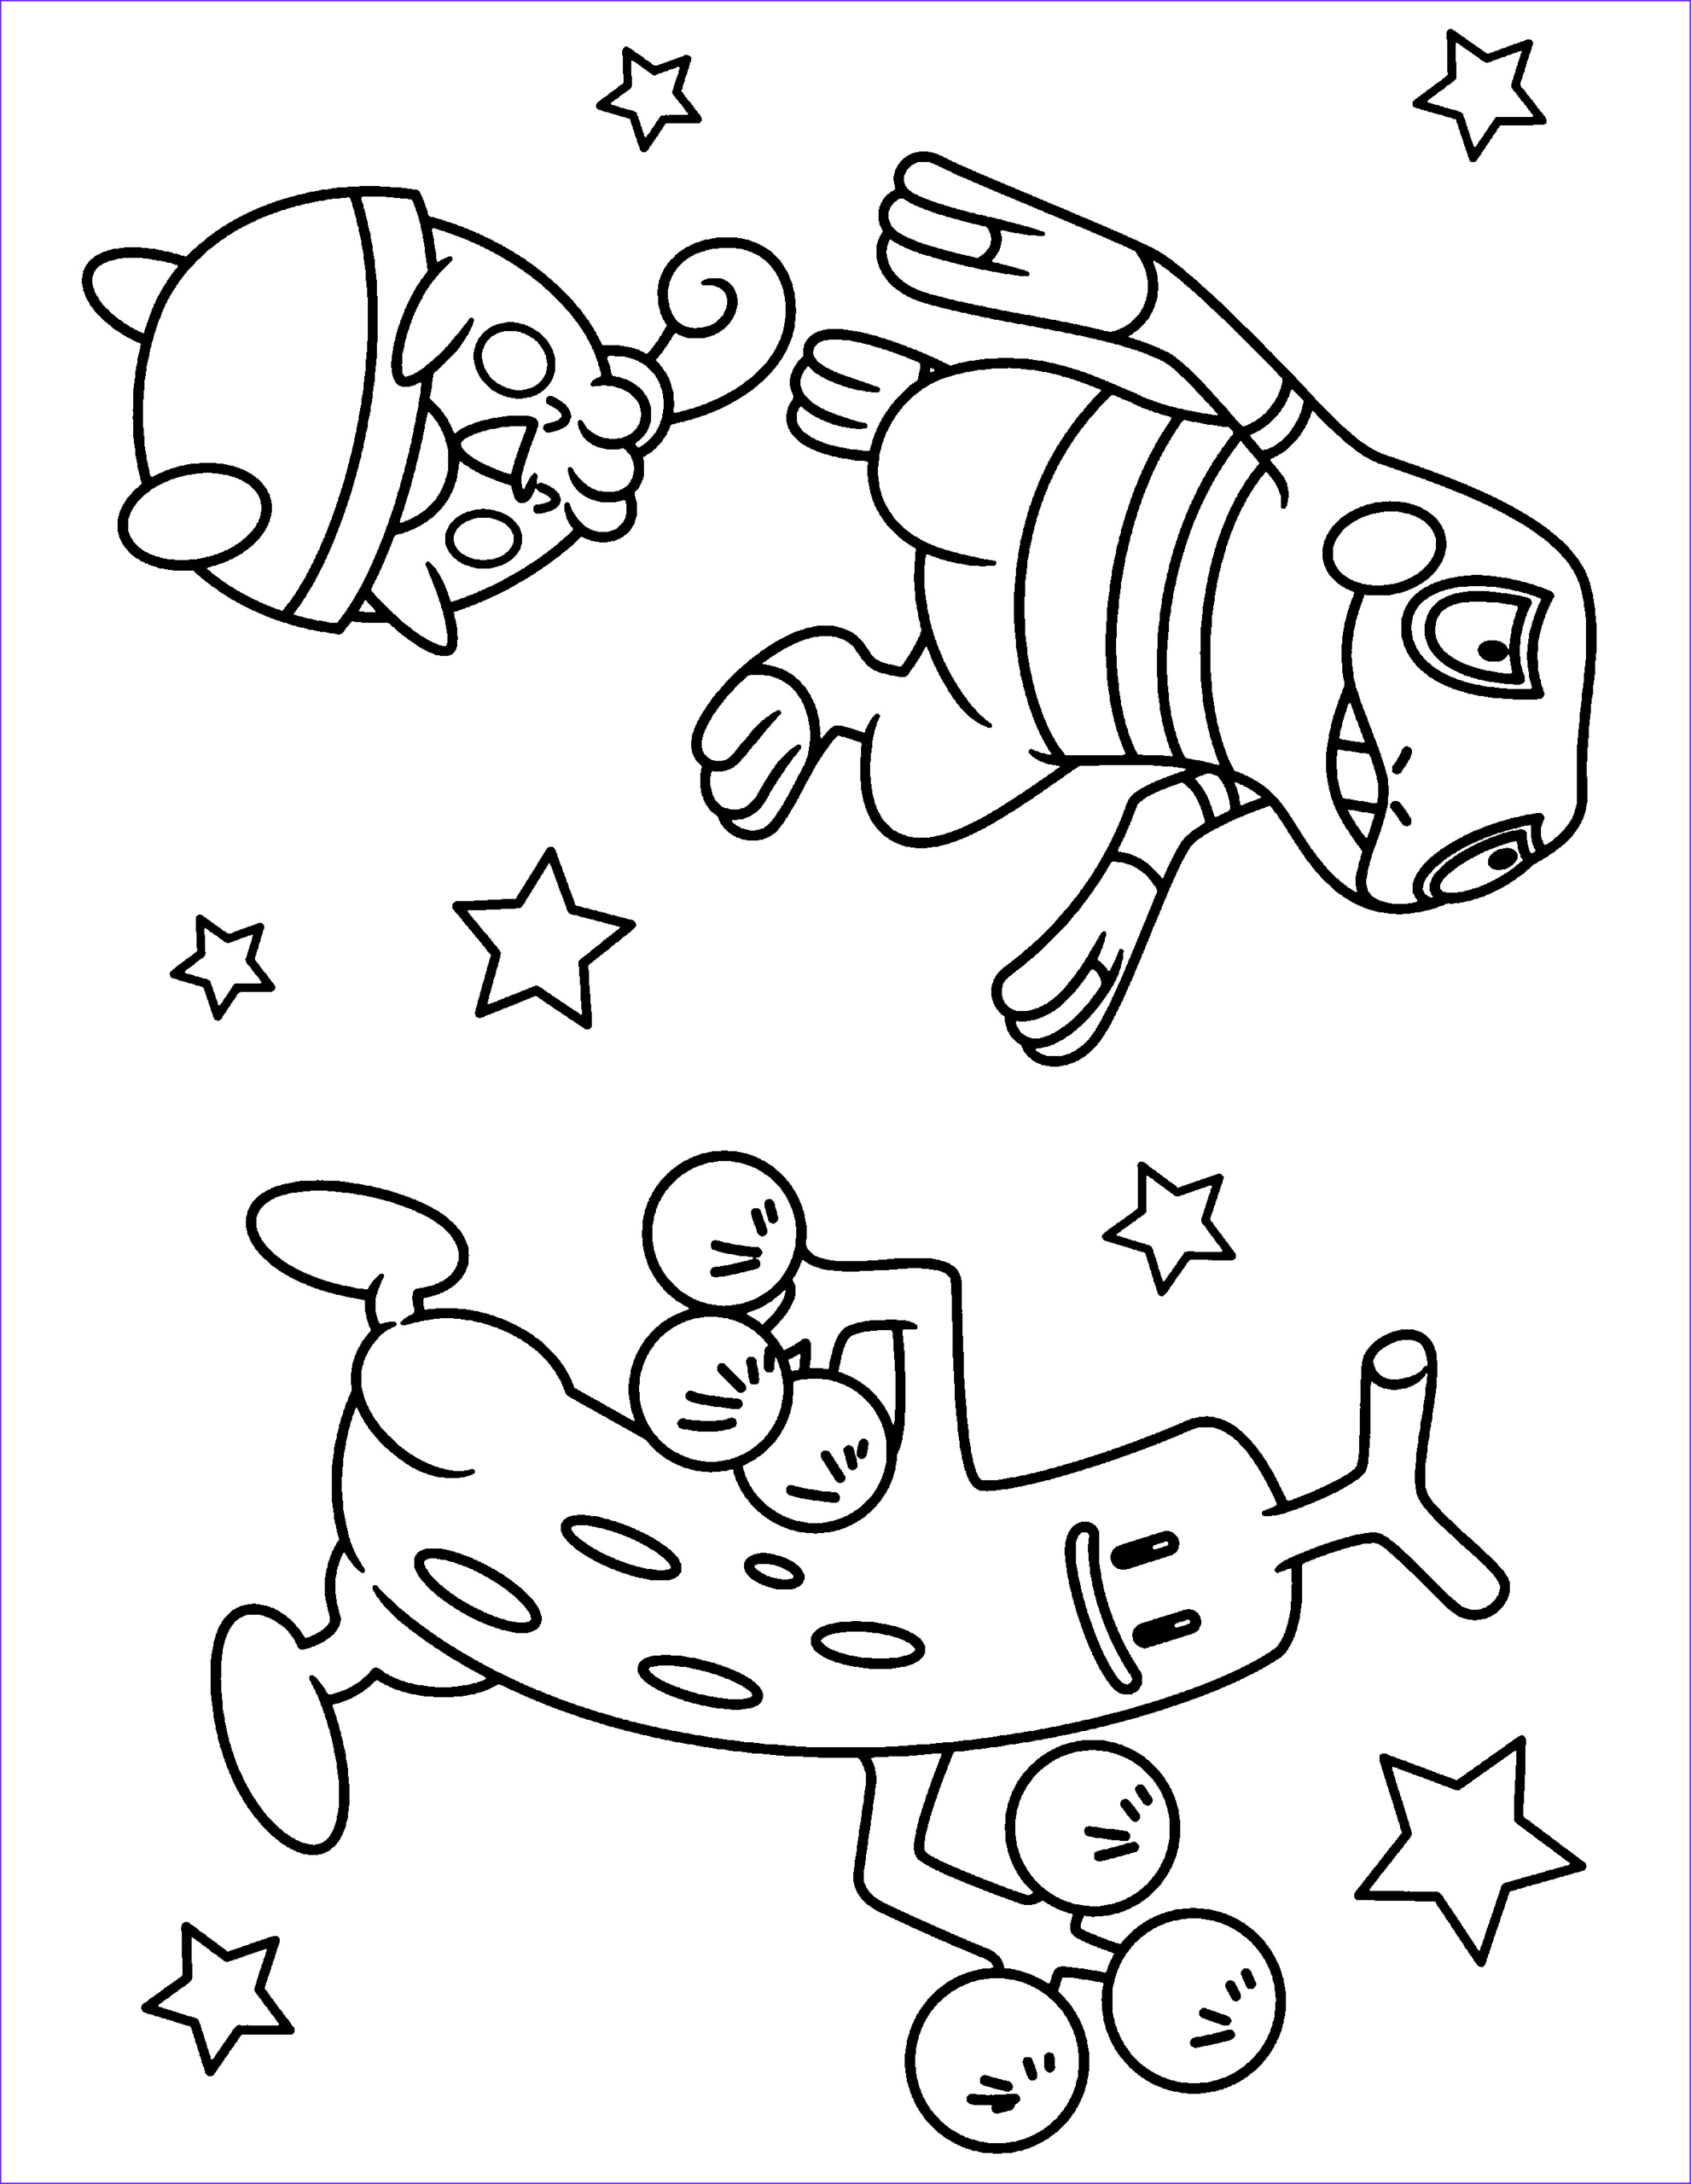 Diamond Coloring Pages New Photos Coloring Page Pokemon Diamond Pearl Coloring Pages 9